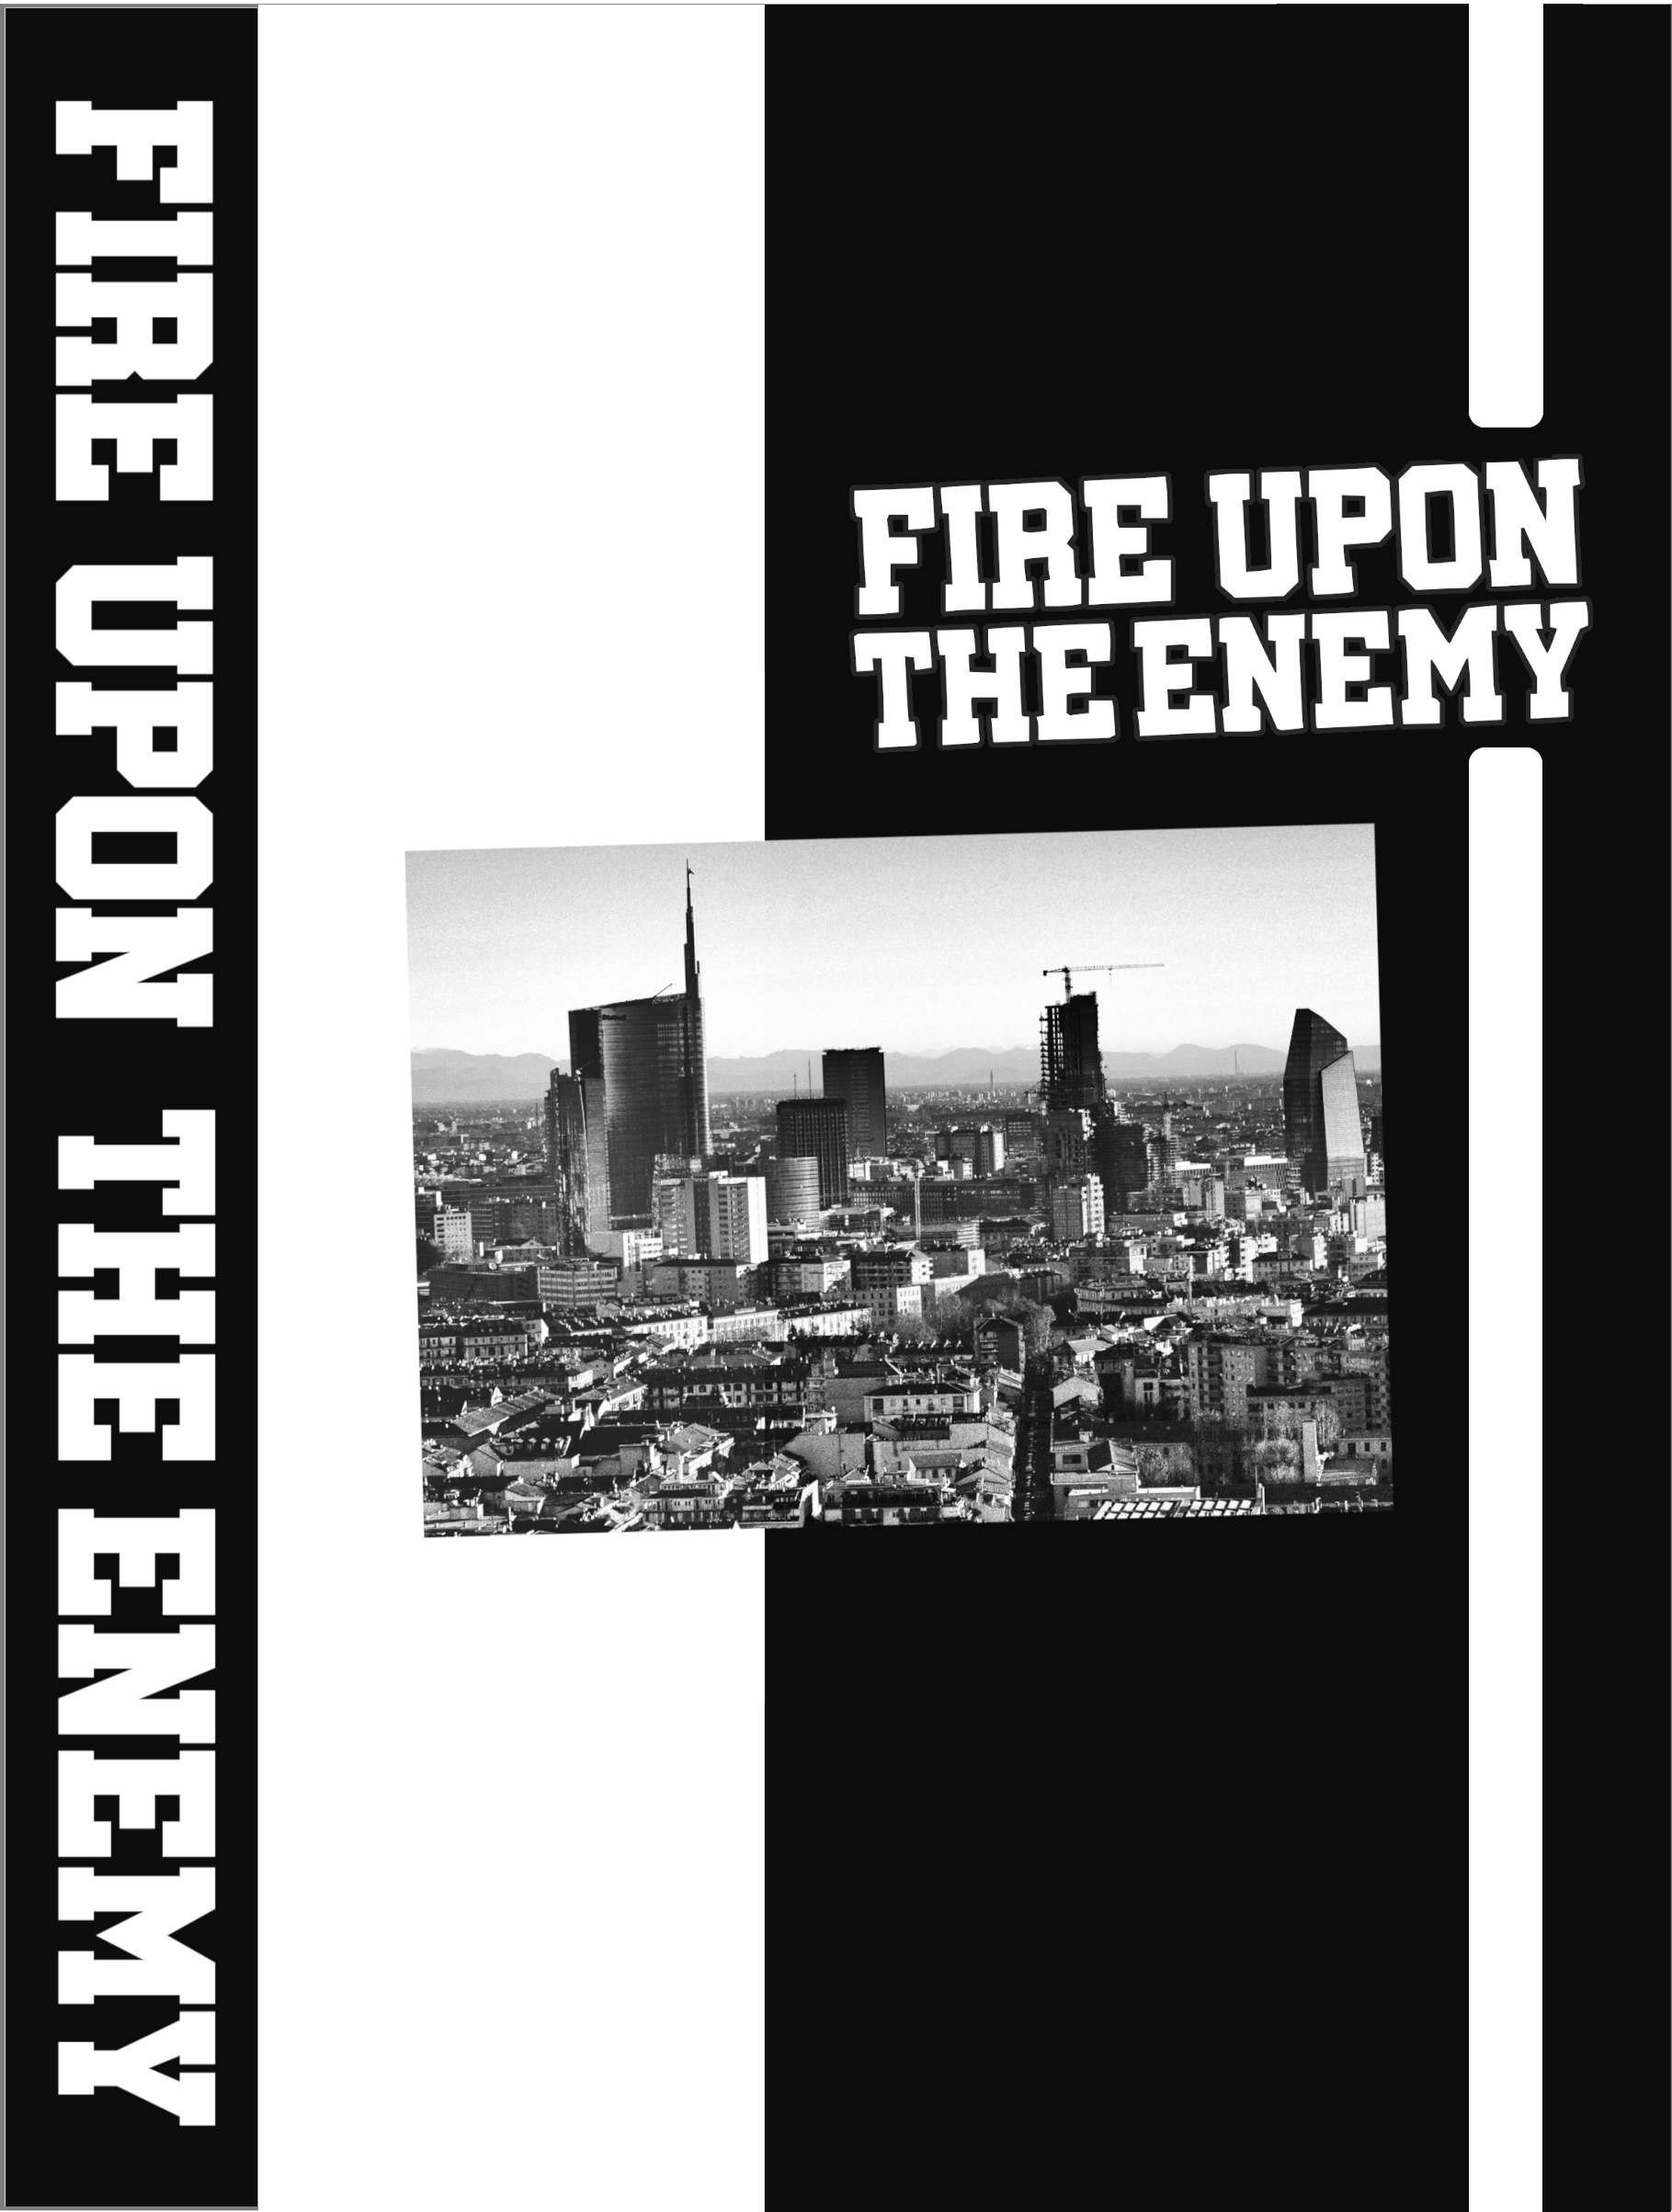 Fire Upon Enemy - The unreleased EP CS